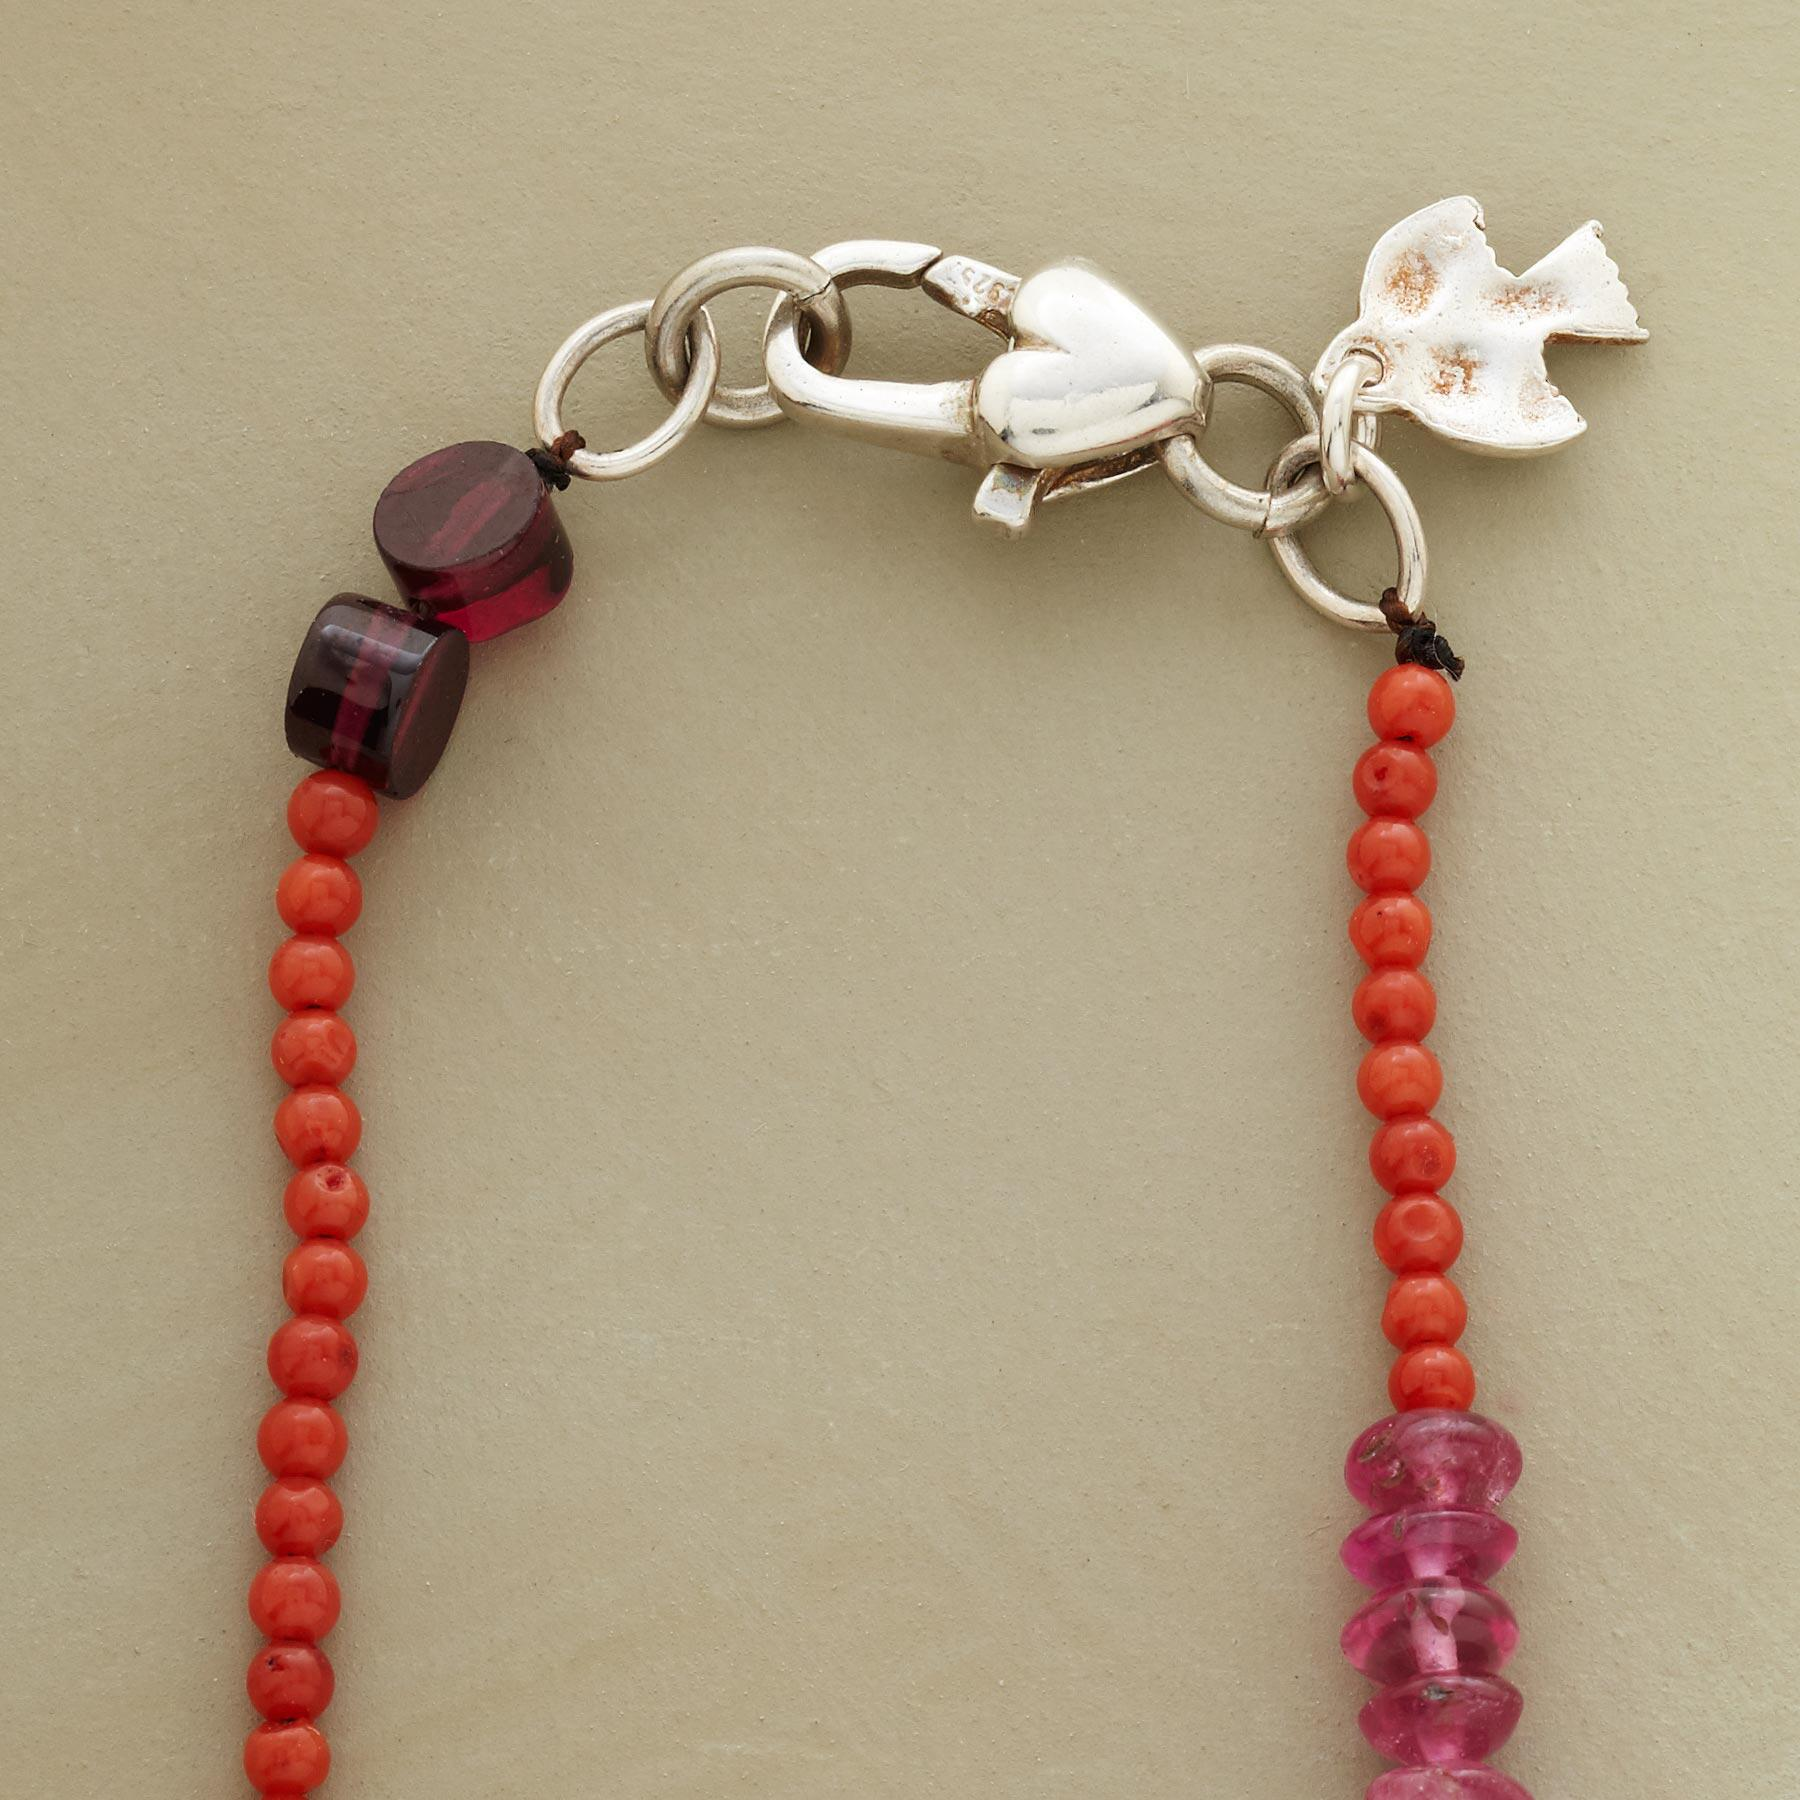 TRAIL MIX NECKLACE  : View 3